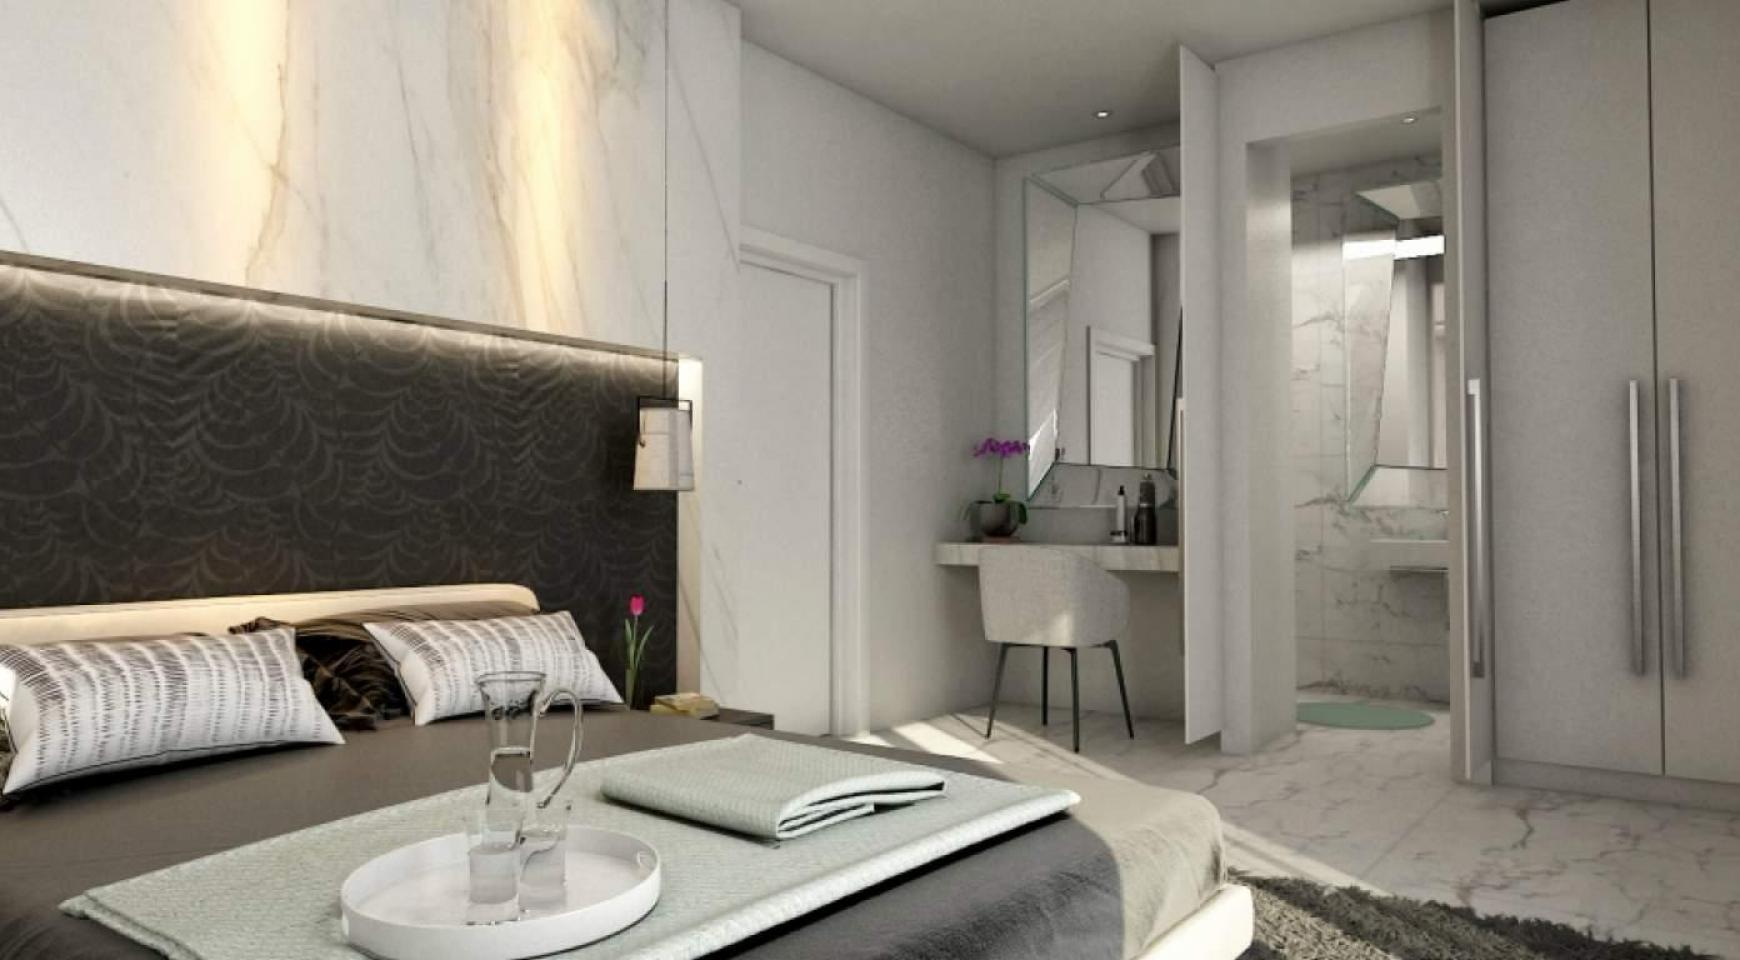 4 Bedroom House in Leivadia Area - 19